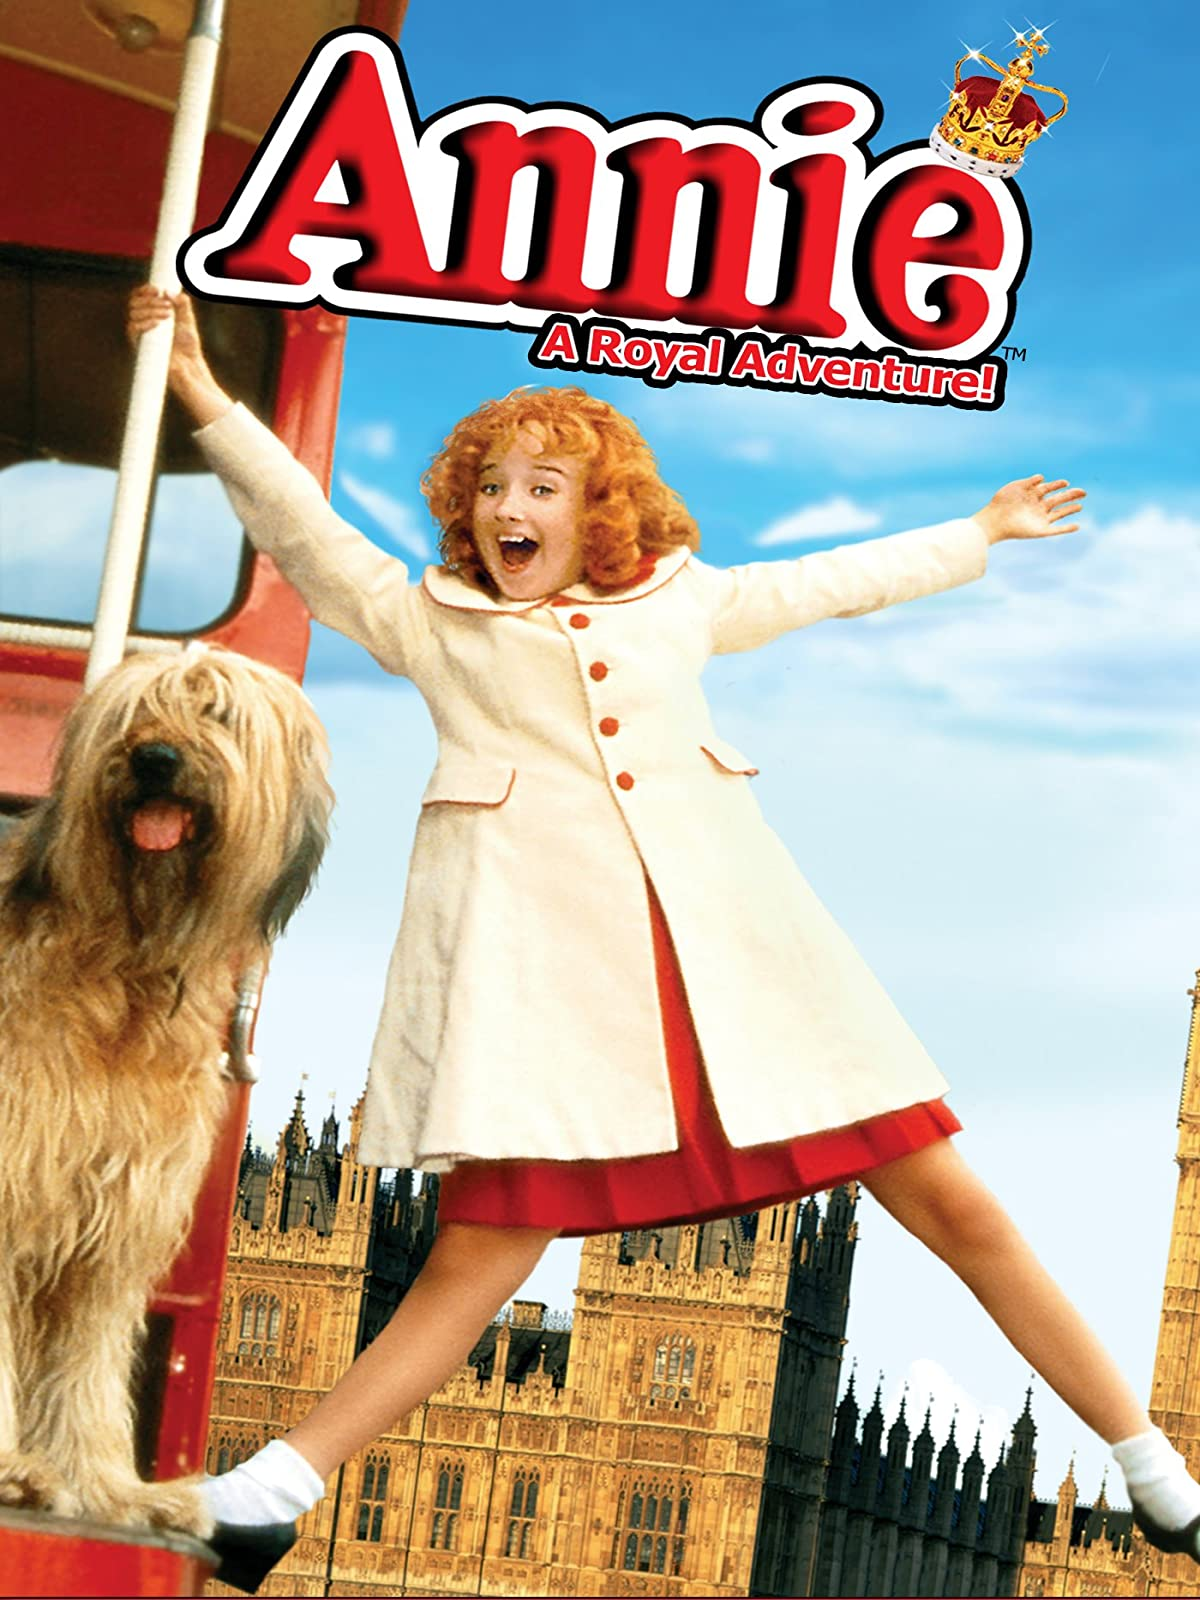 watch annie online for free without downloading